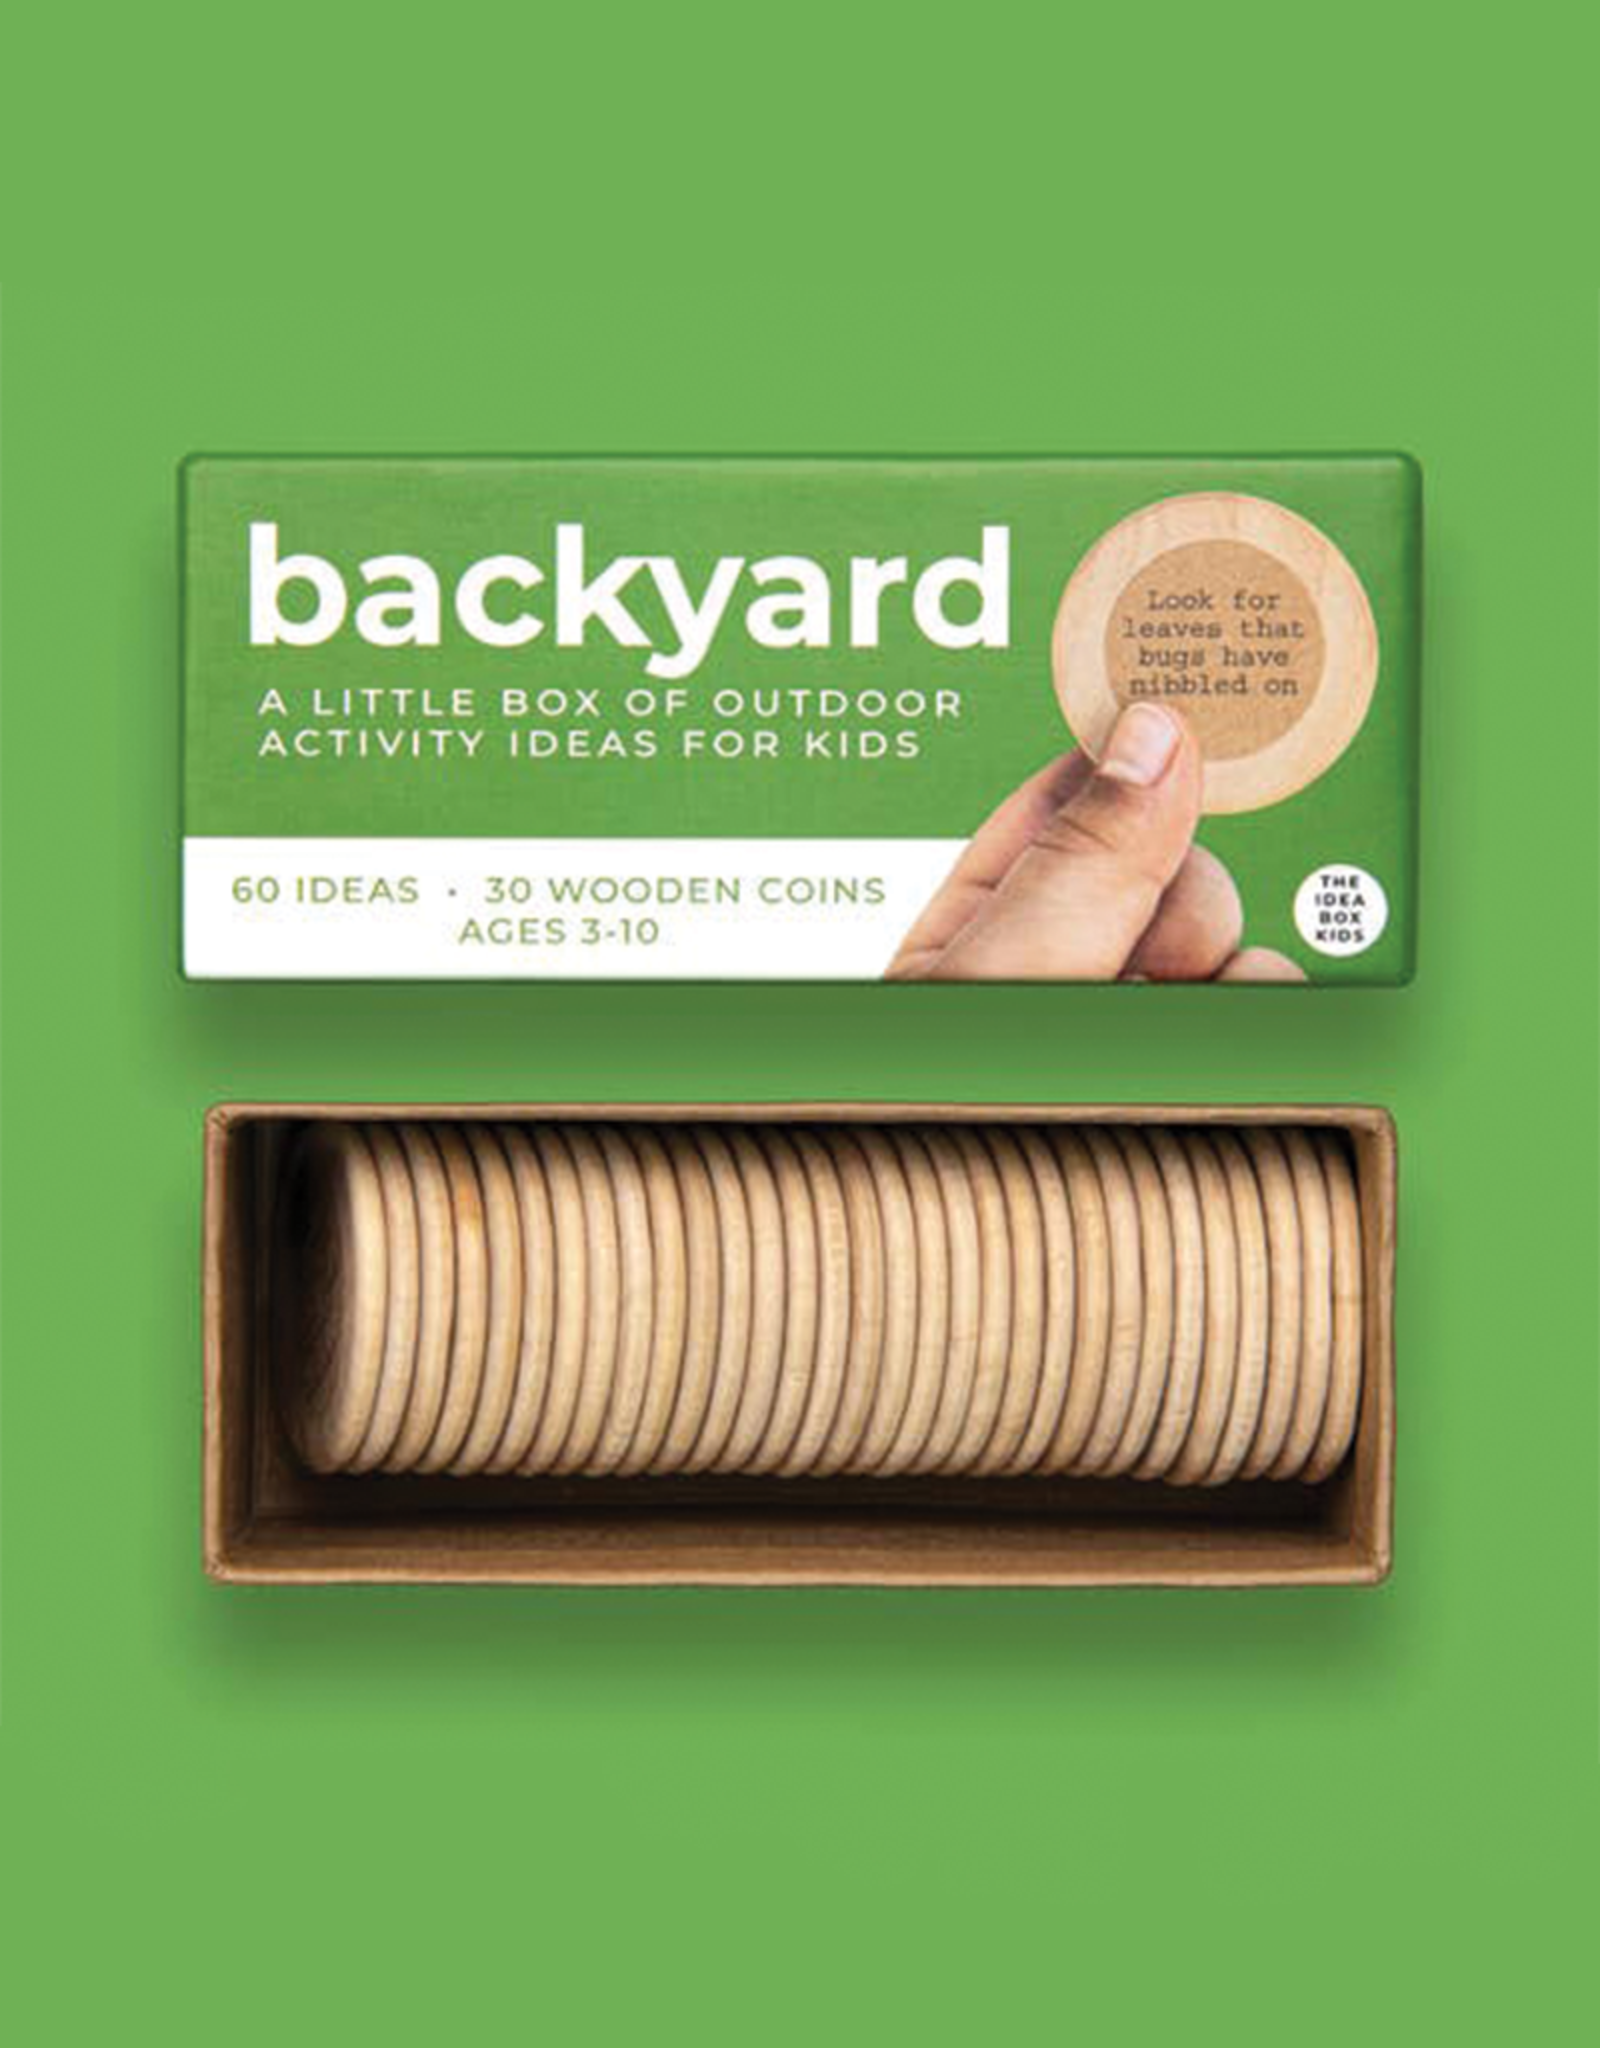 The Idea Box Kids Backyard Outdoor Nature Box for Kids